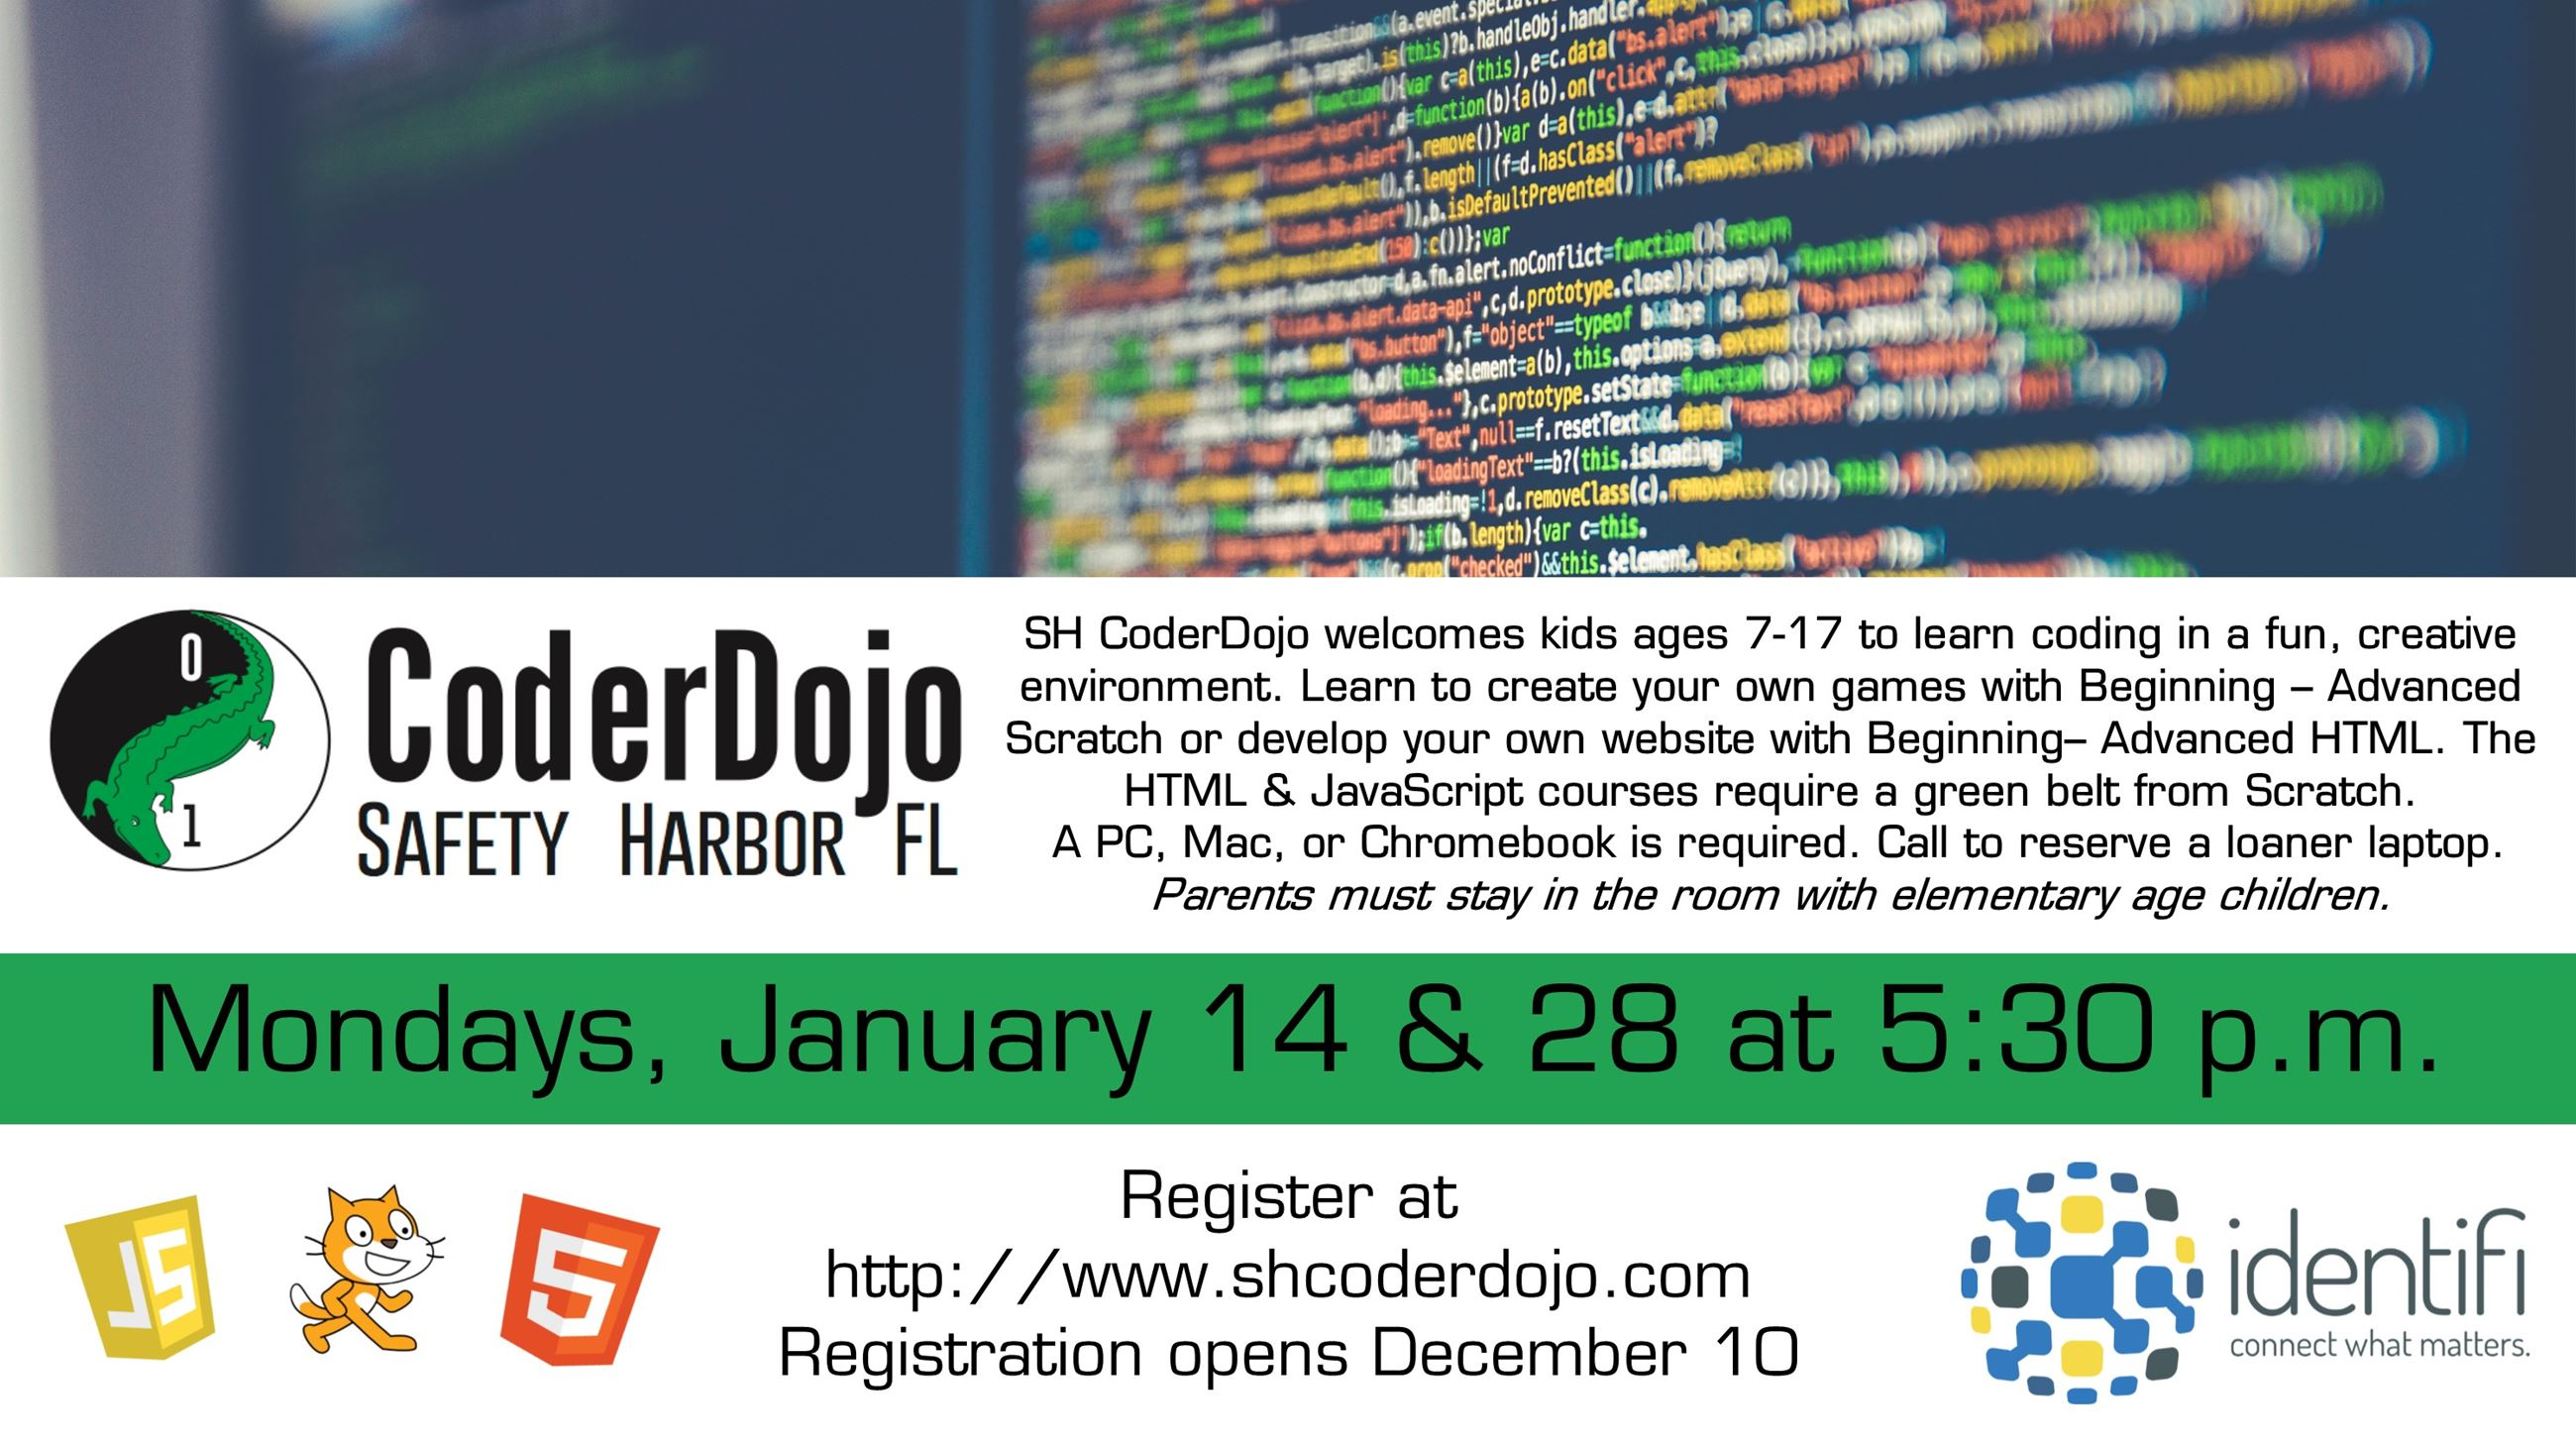 CoderDojo- Coding for Kids. Starts January 14, 5:30 PM. Register online at www.shcoderdojo.com.